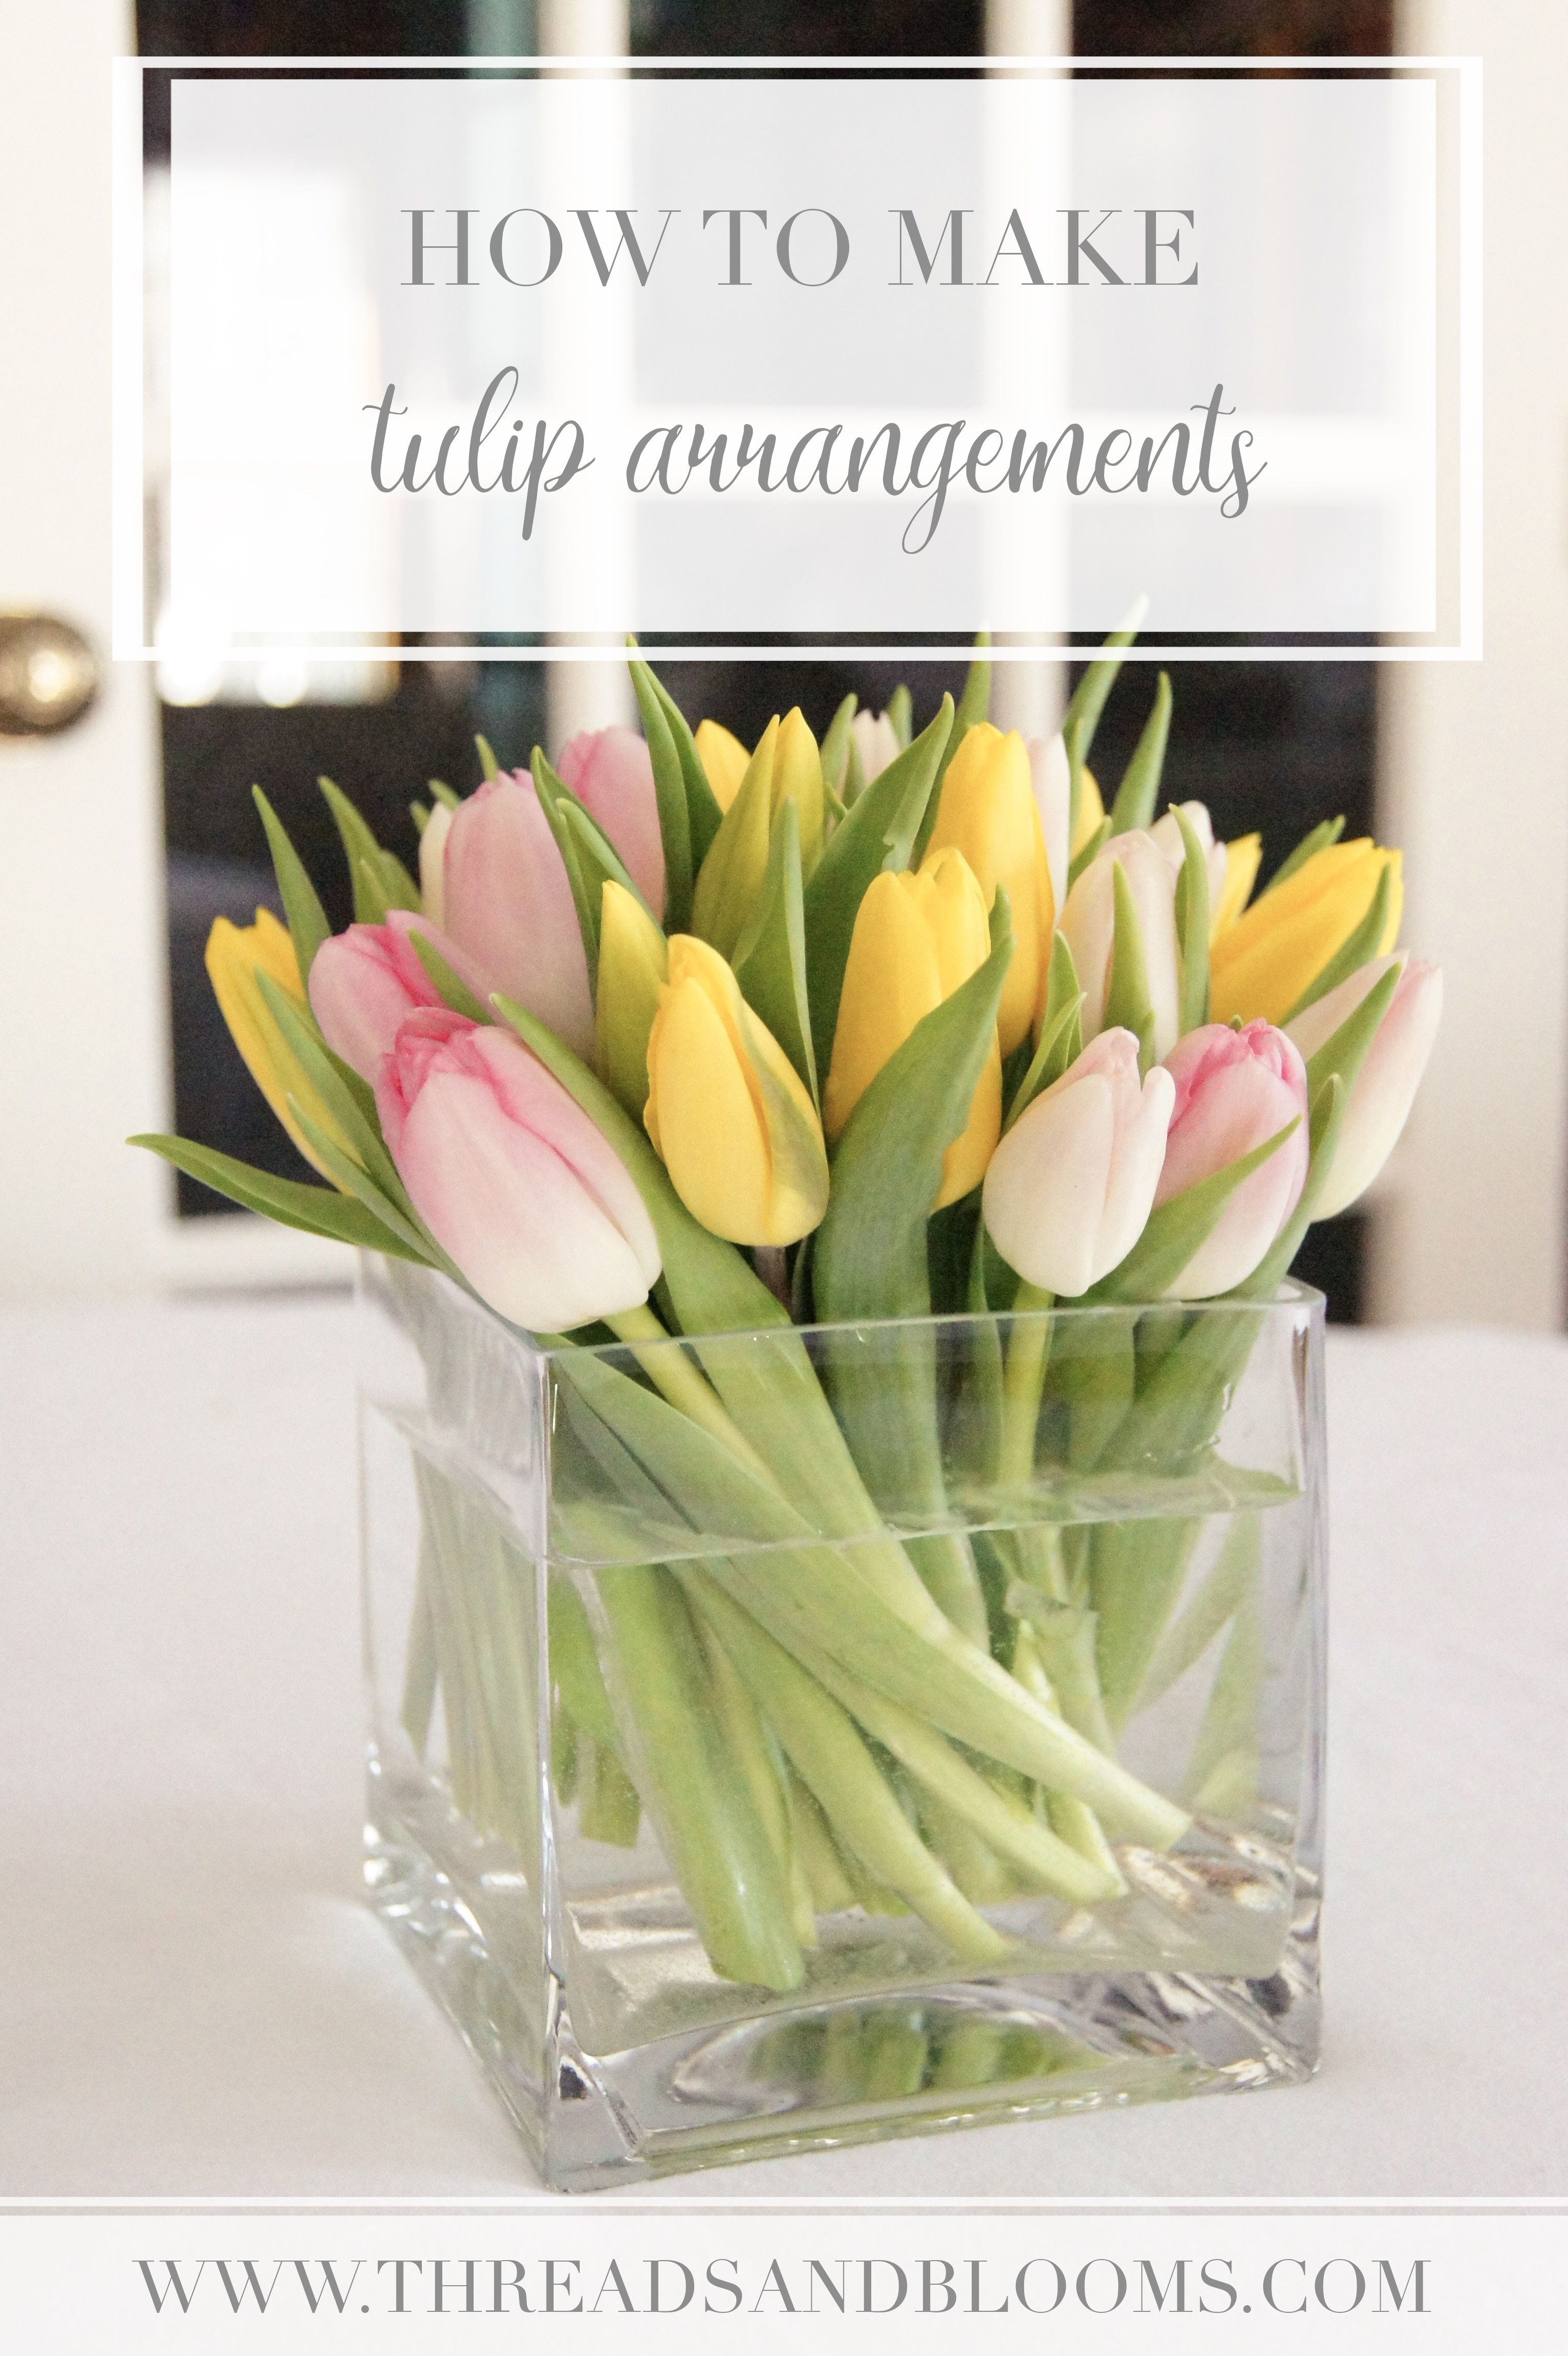 4 Tulip Arrangements Step By Step How To Make A Tulip Arrangement Tulips Arrangement Fresh Flowers Arrangements Spring Flower Arrangements